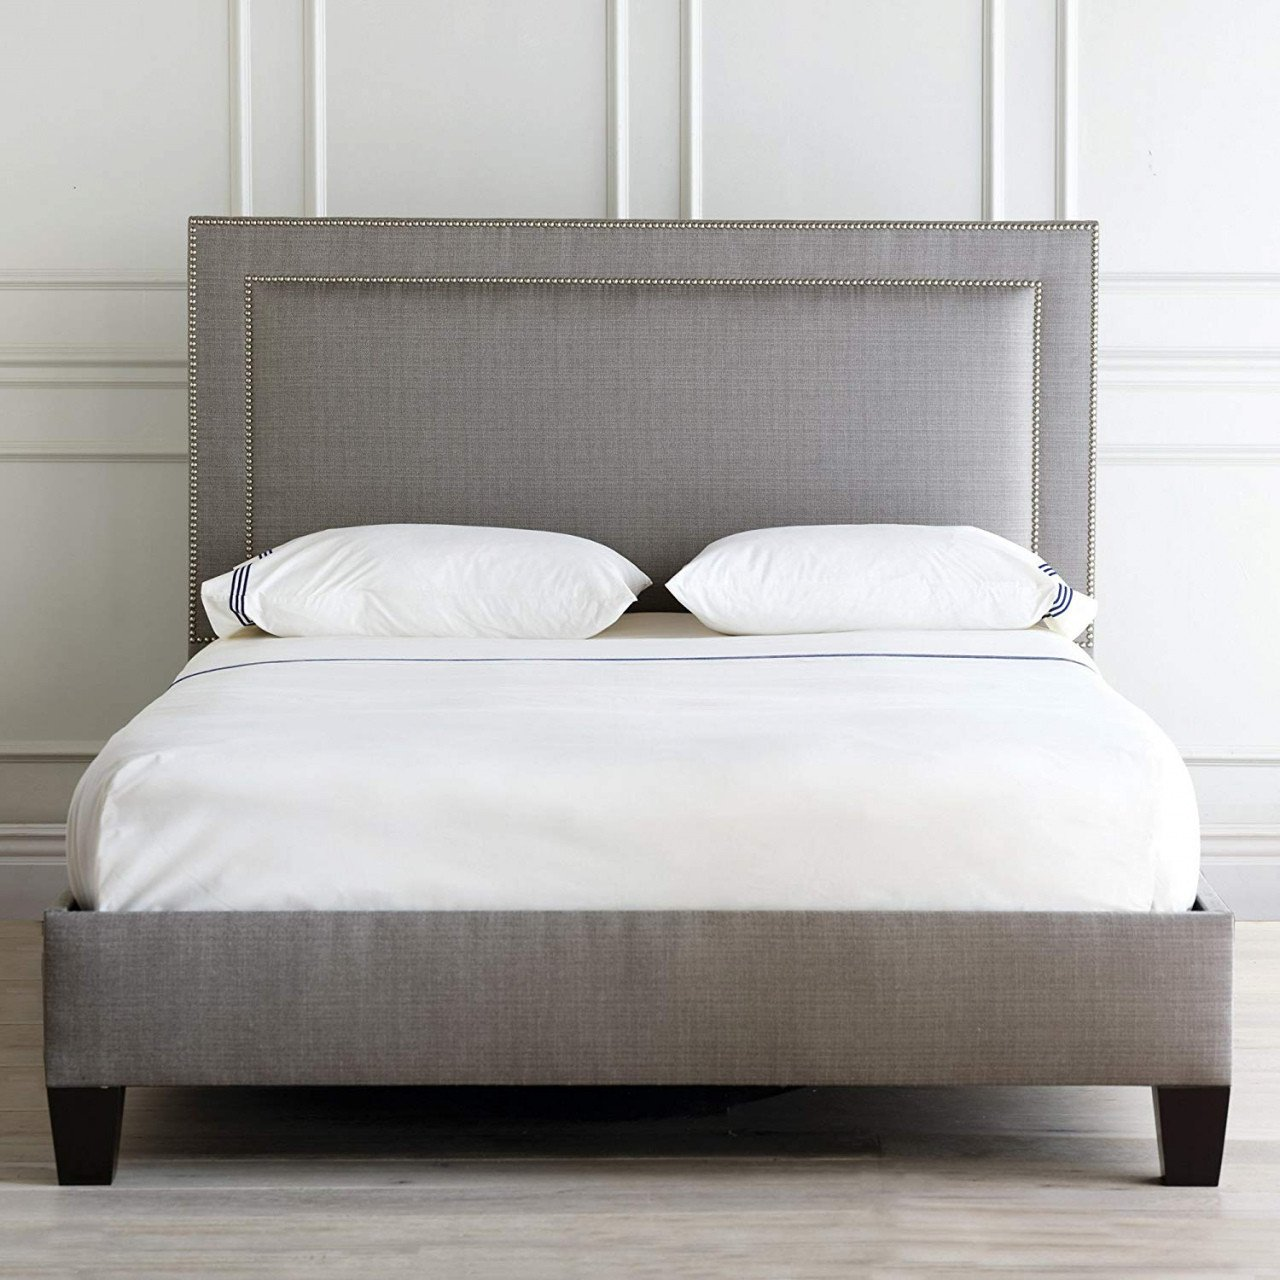 Queen Bedroom Set Cheap Unique King Metal Platform Bed — Procura Home Blog